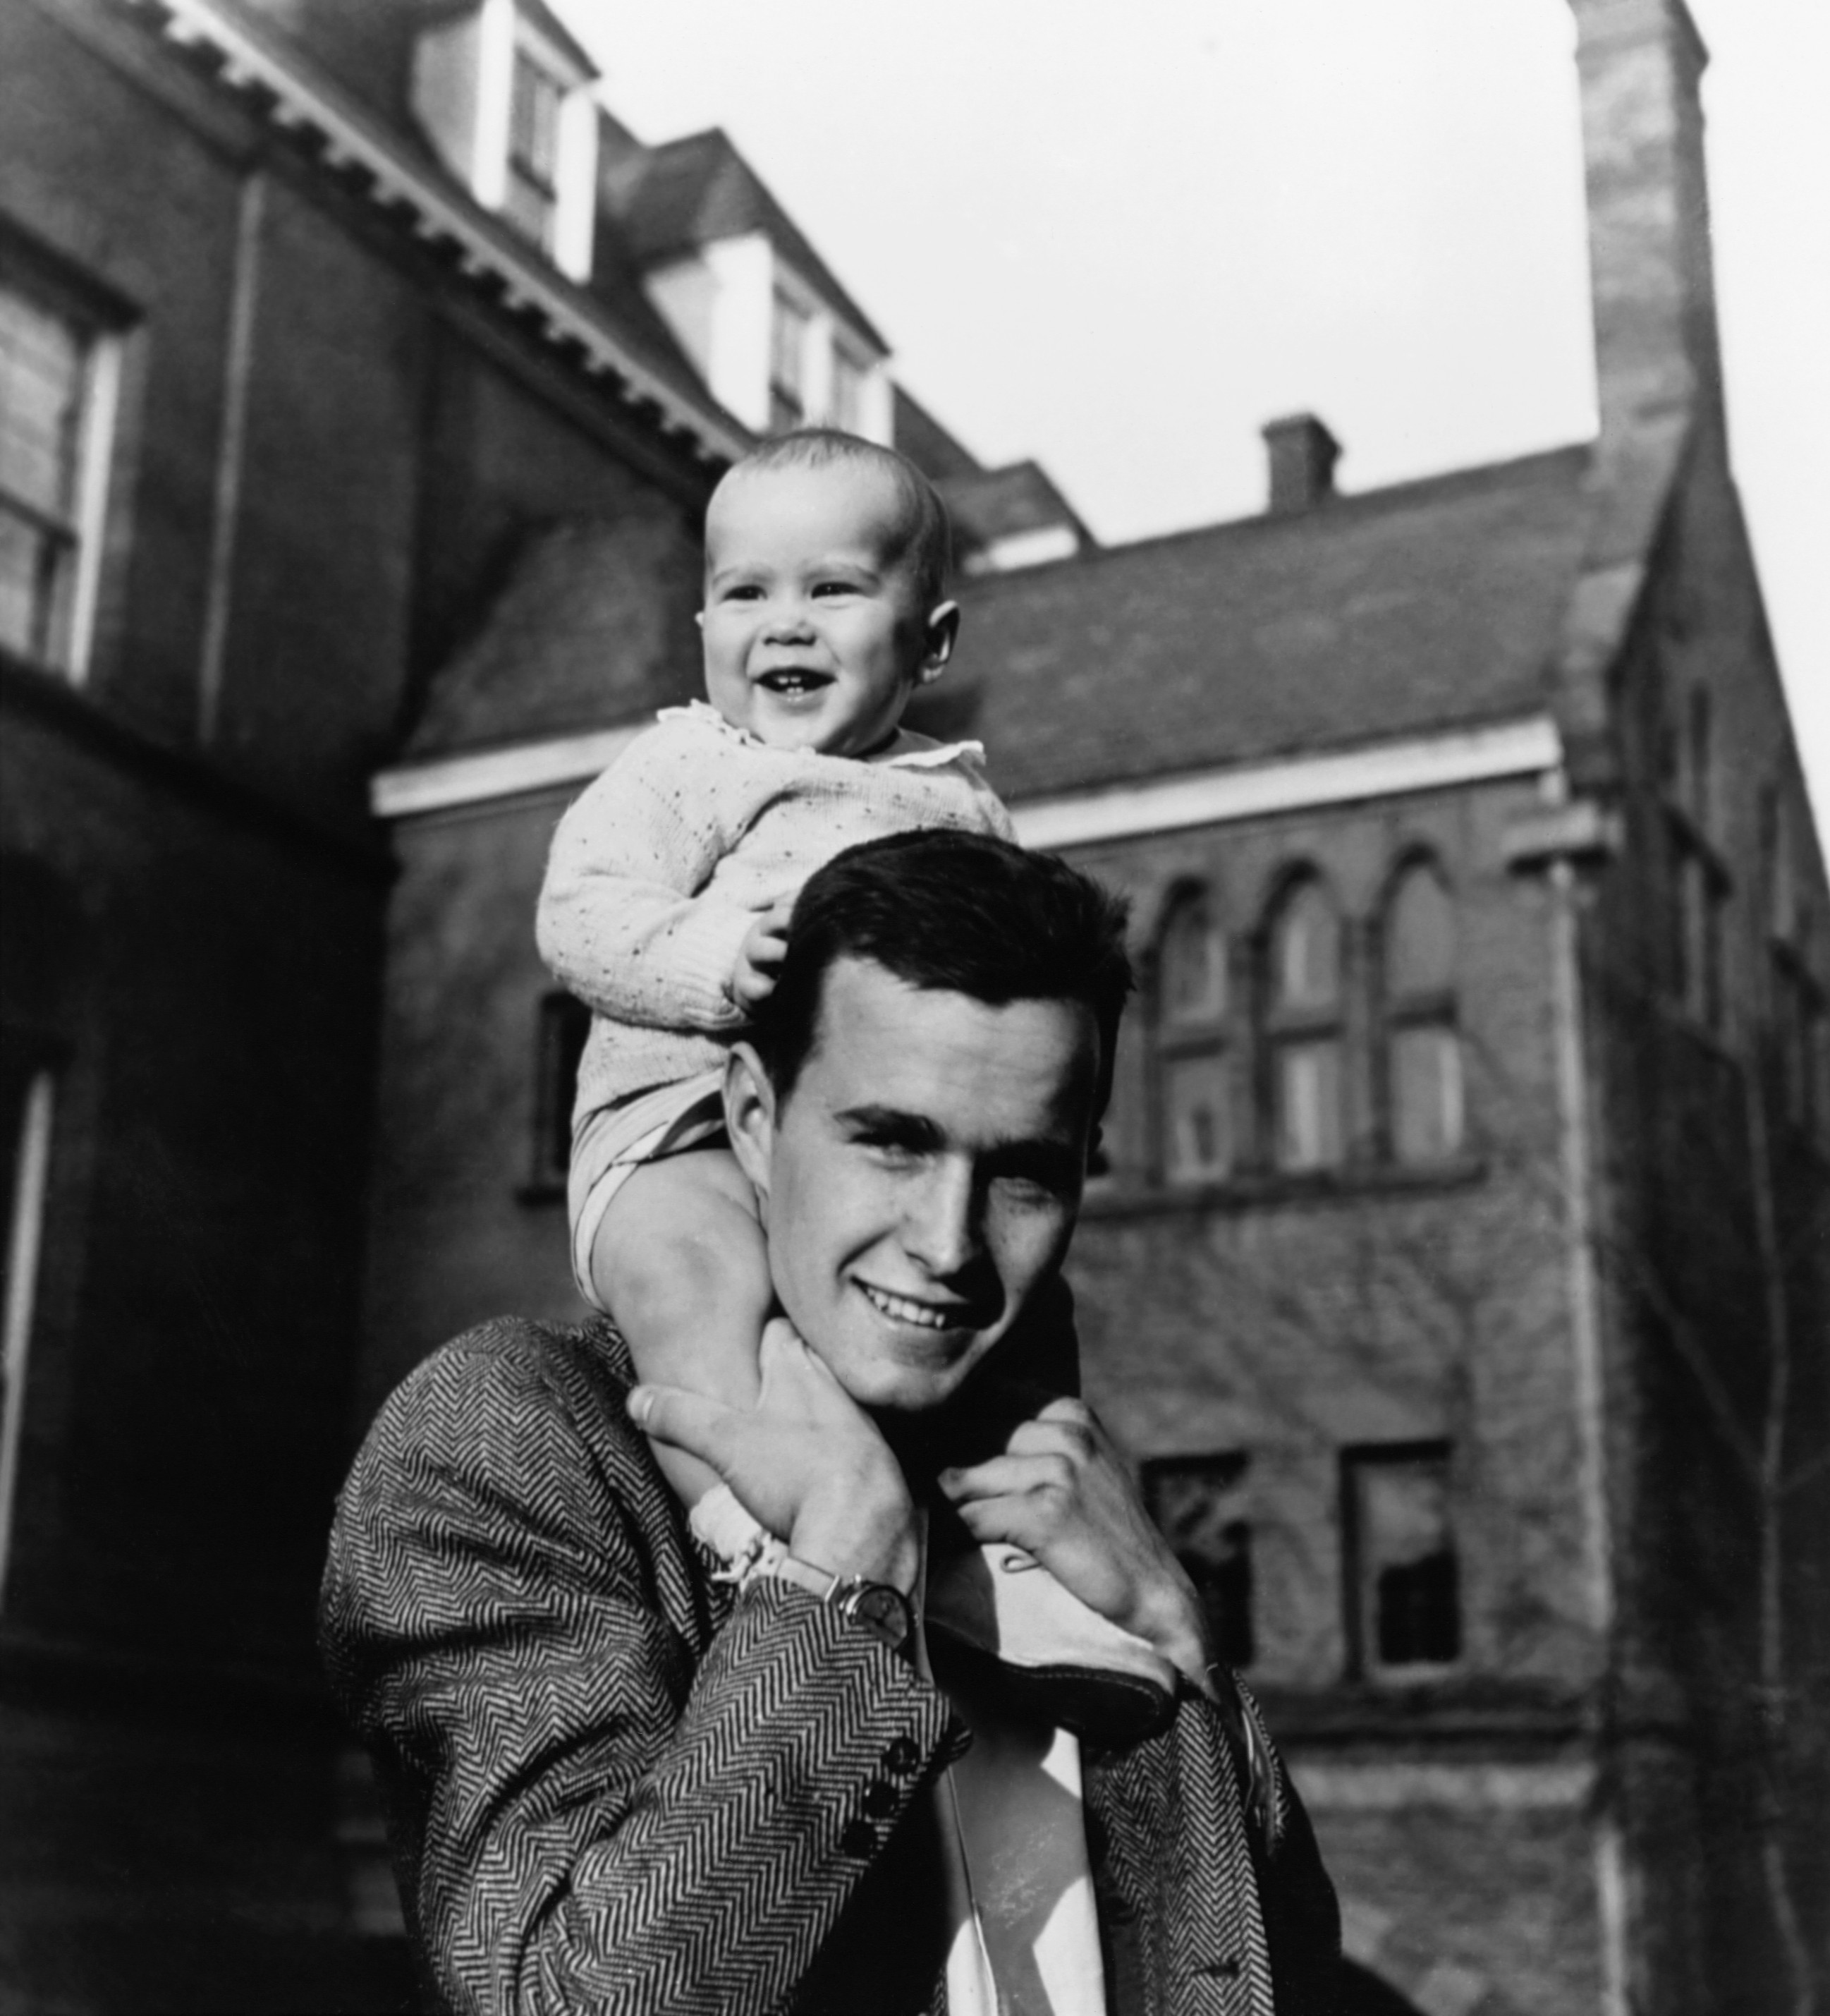 George H.W. Bush carries his infant son George W. Bush on his shoulders at Yale University in New Haven, Conn.